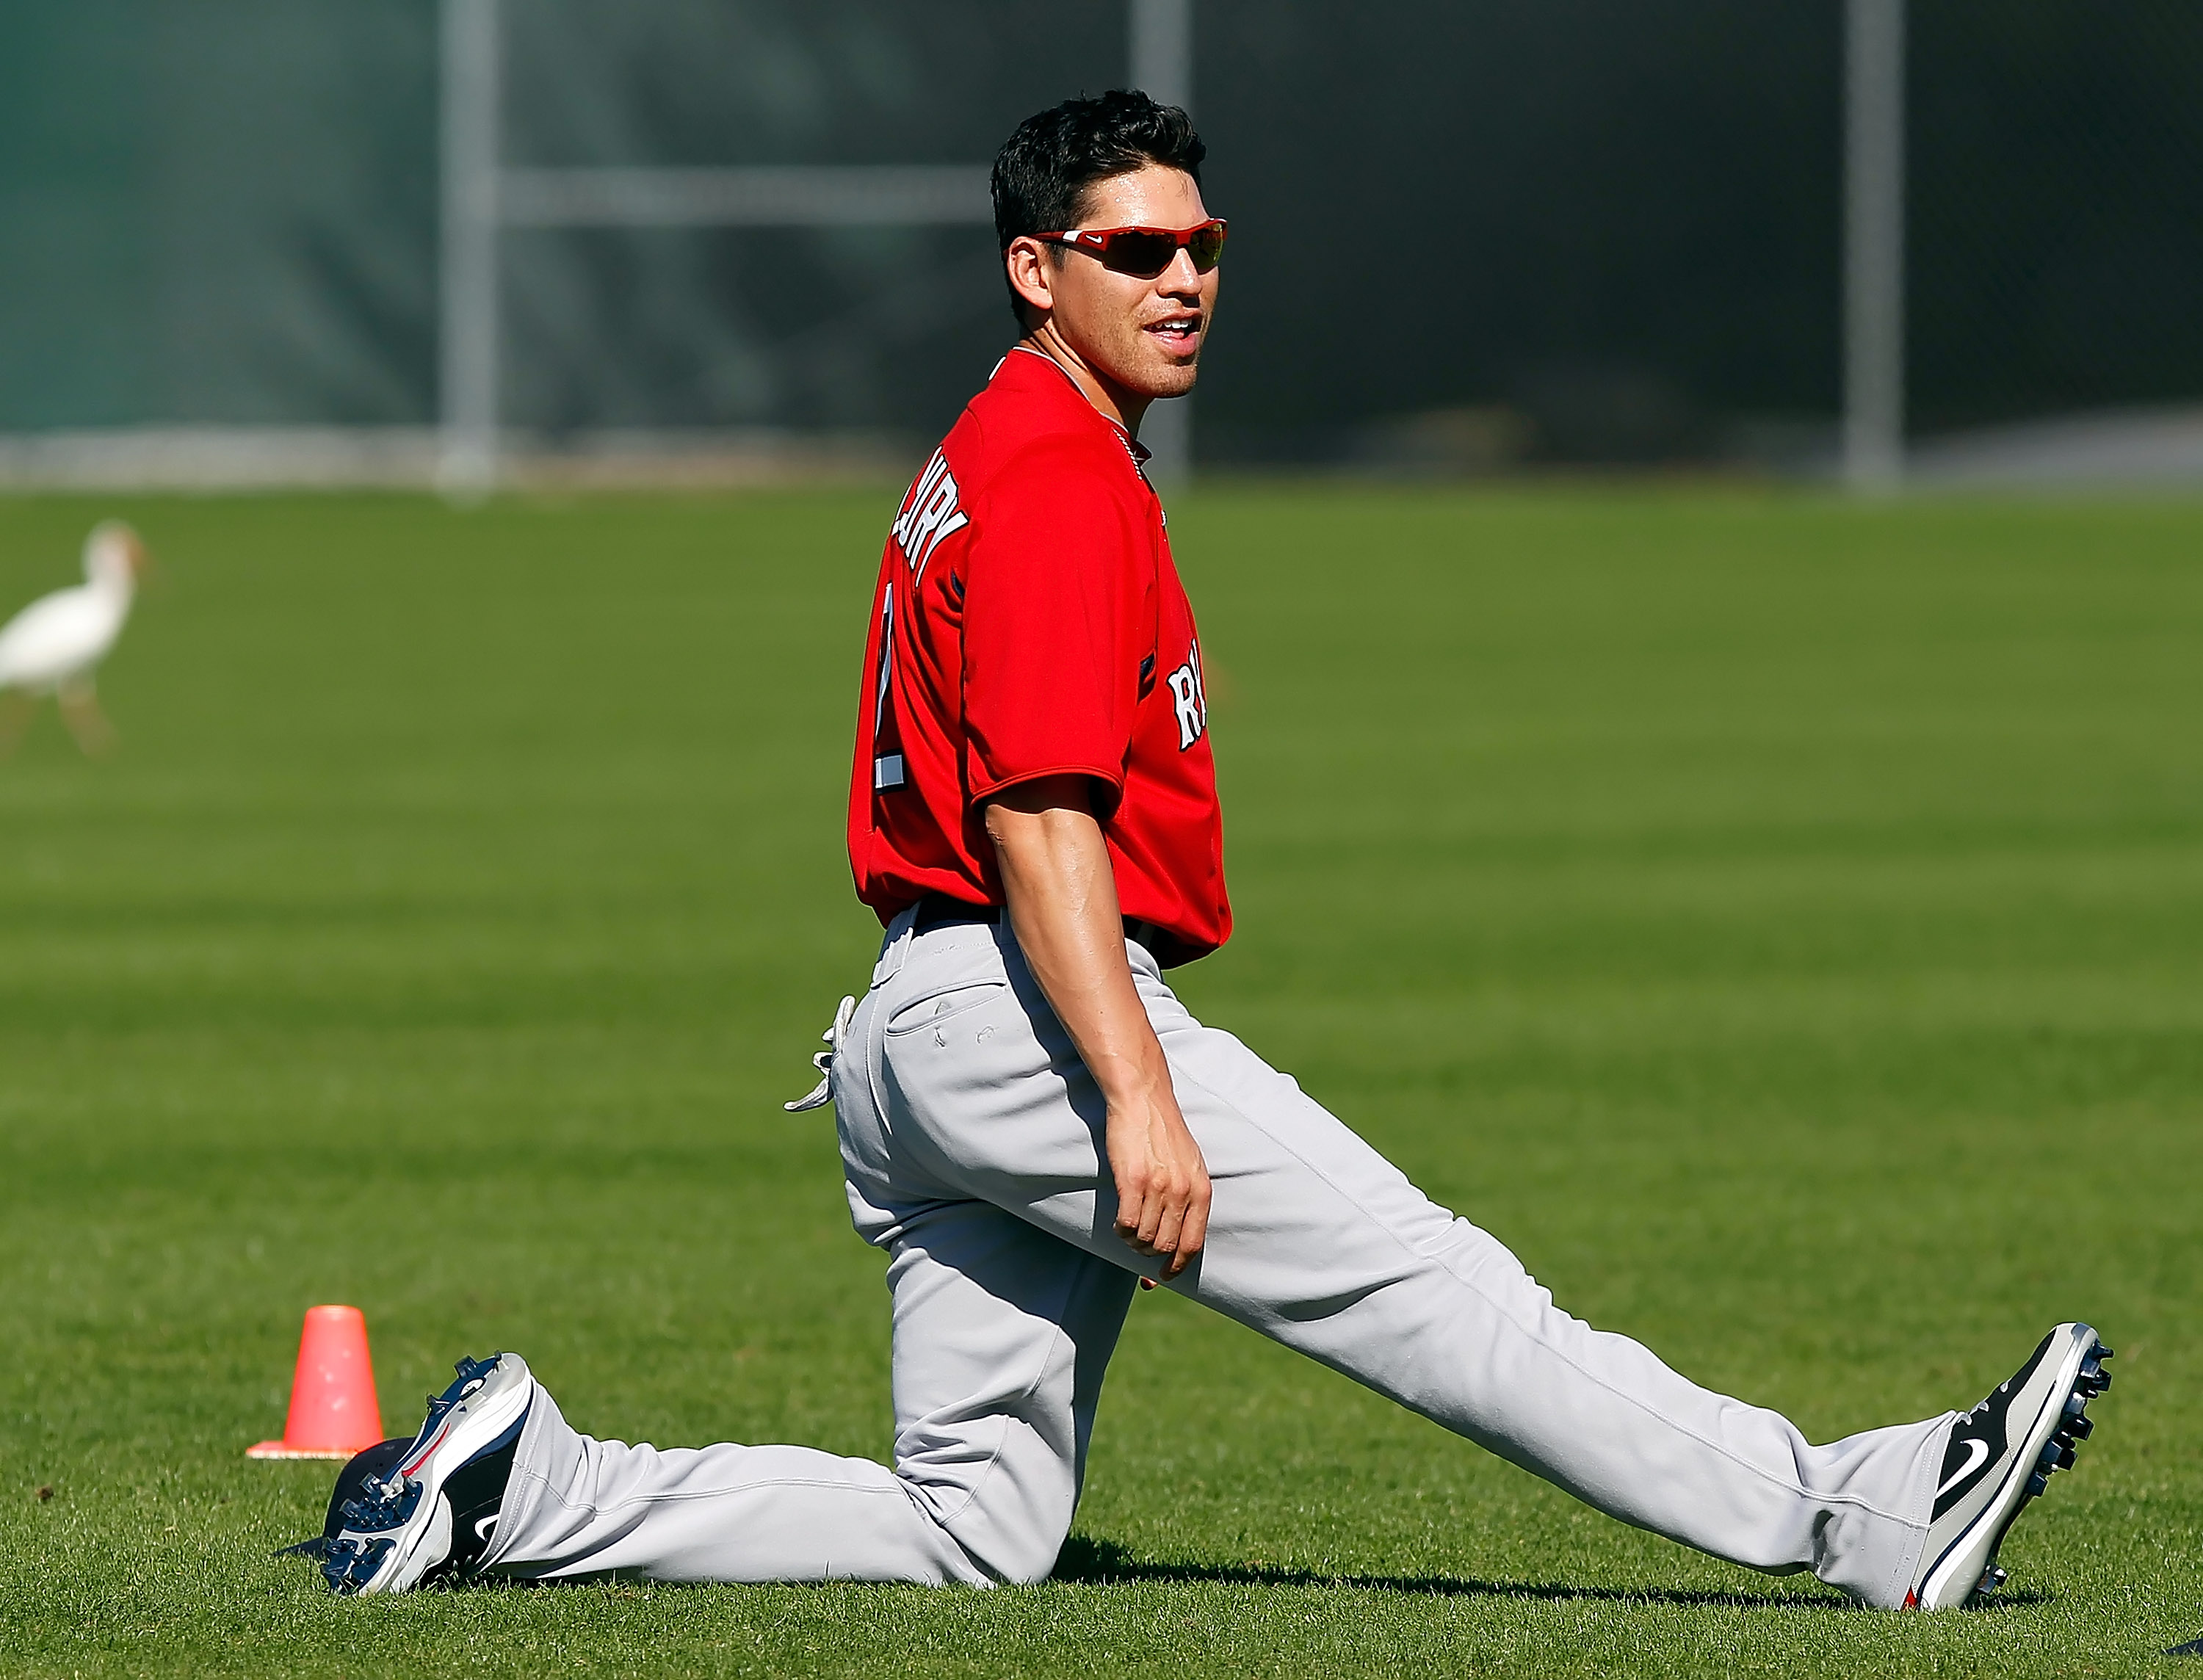 FORT MYERS, FL - FEBRUARY 19:  Outfielder Jacoby Ellsbury #2 of the Boston Red Sox stretches during a Spring Training Workout Session at the Red Sox Player Development Complex on February 19, 2011 in Fort Myers, Florida.  (Photo by J. Meric/Getty Images)